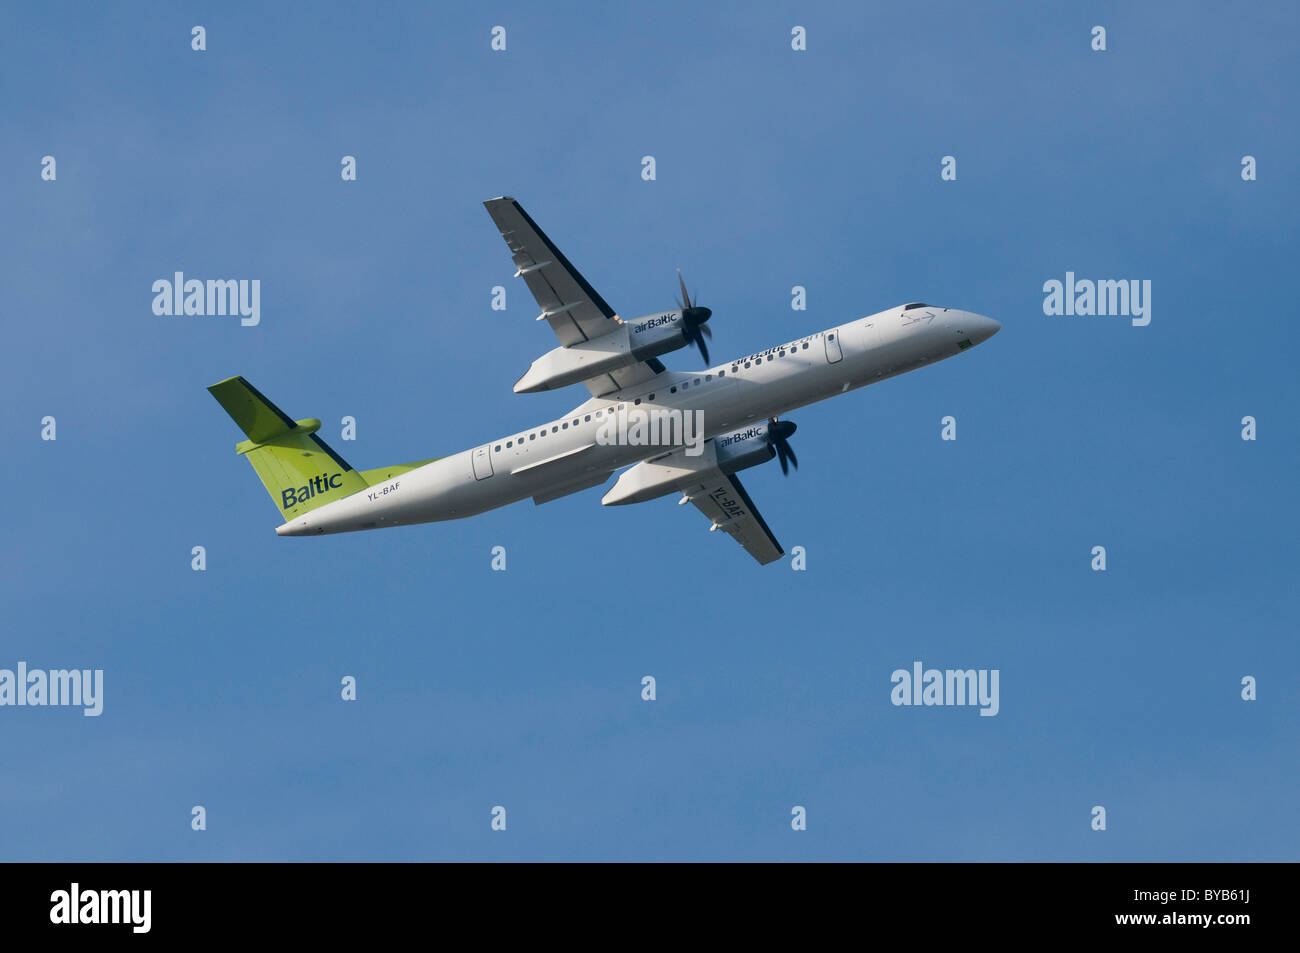 Air Baltic de Havilland Canada DHC-8-400Q Dash 8 in ascent, regional aircraft by Bombardier - Stock Image